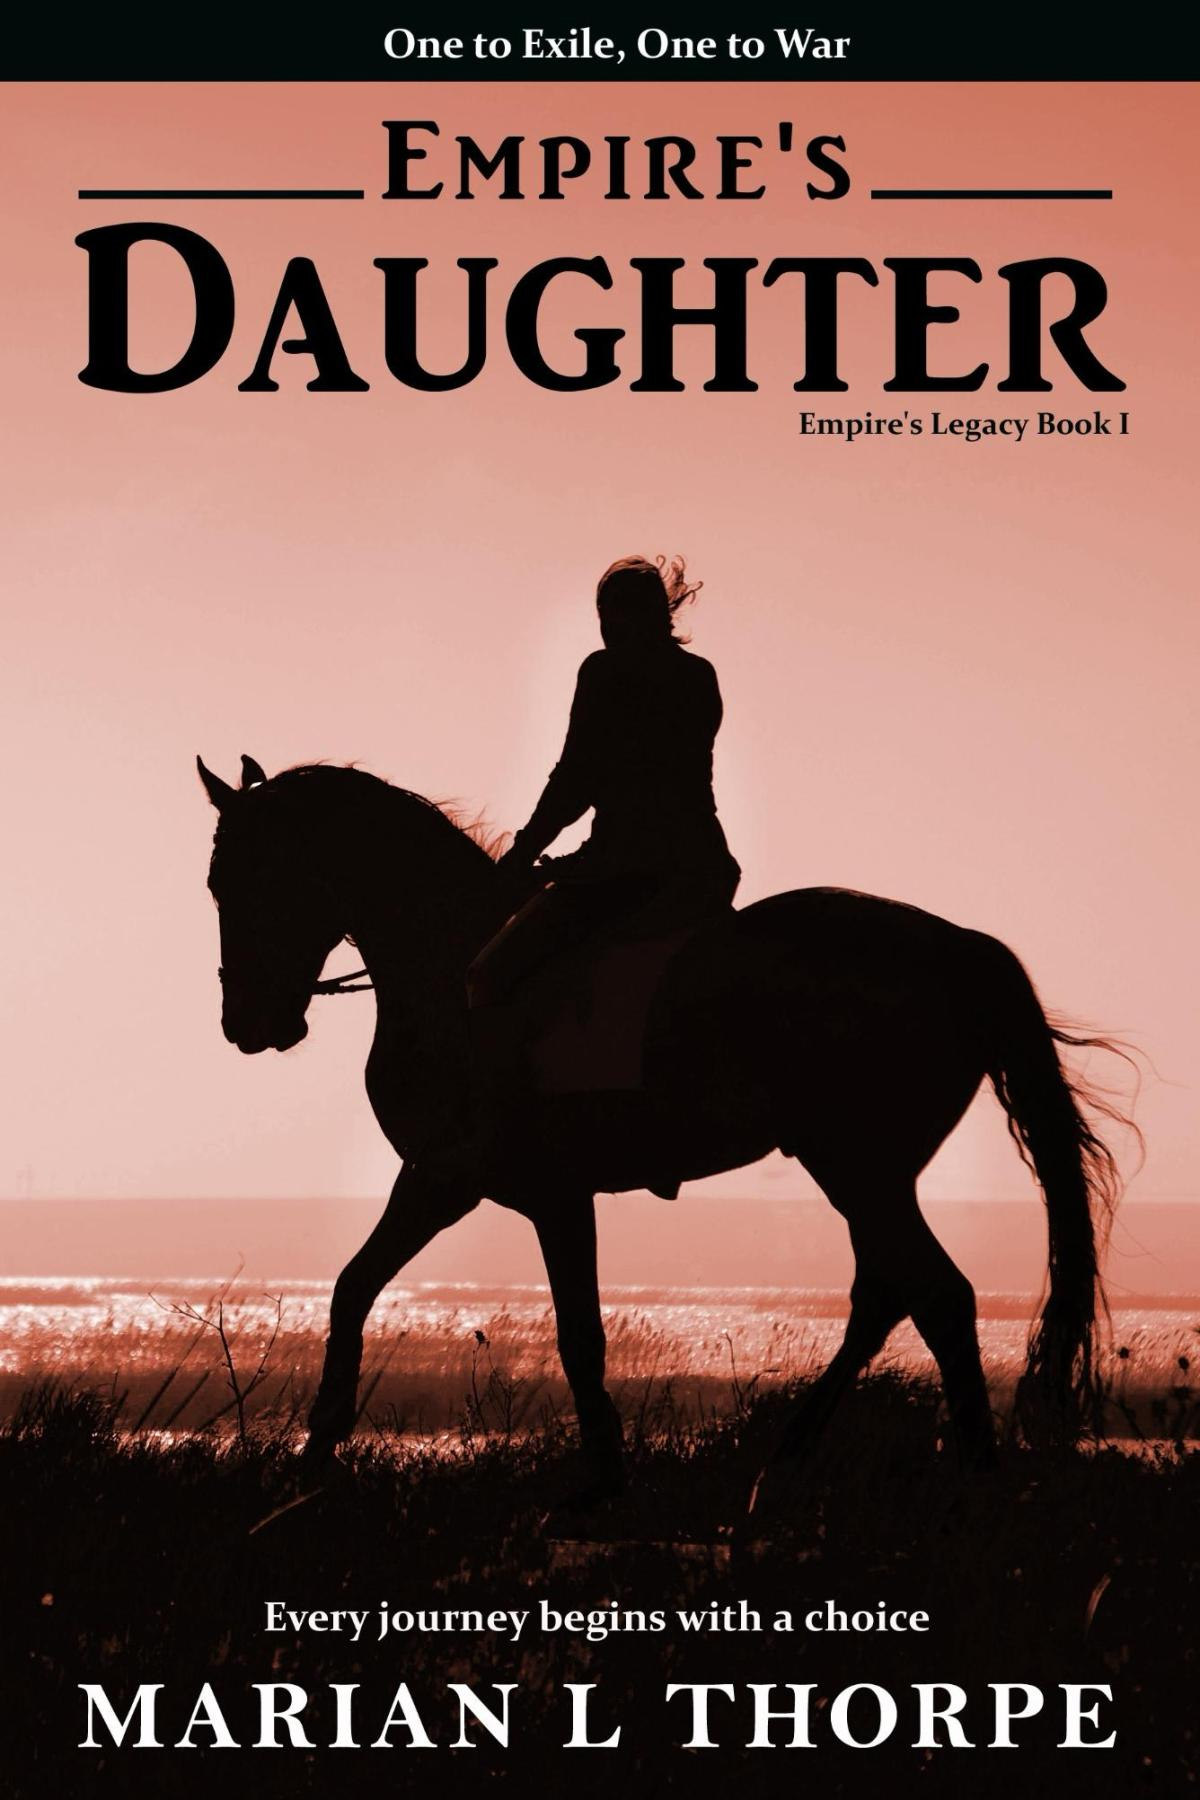 Canada!  You can now order Empire's Daughter from Amazon.ca